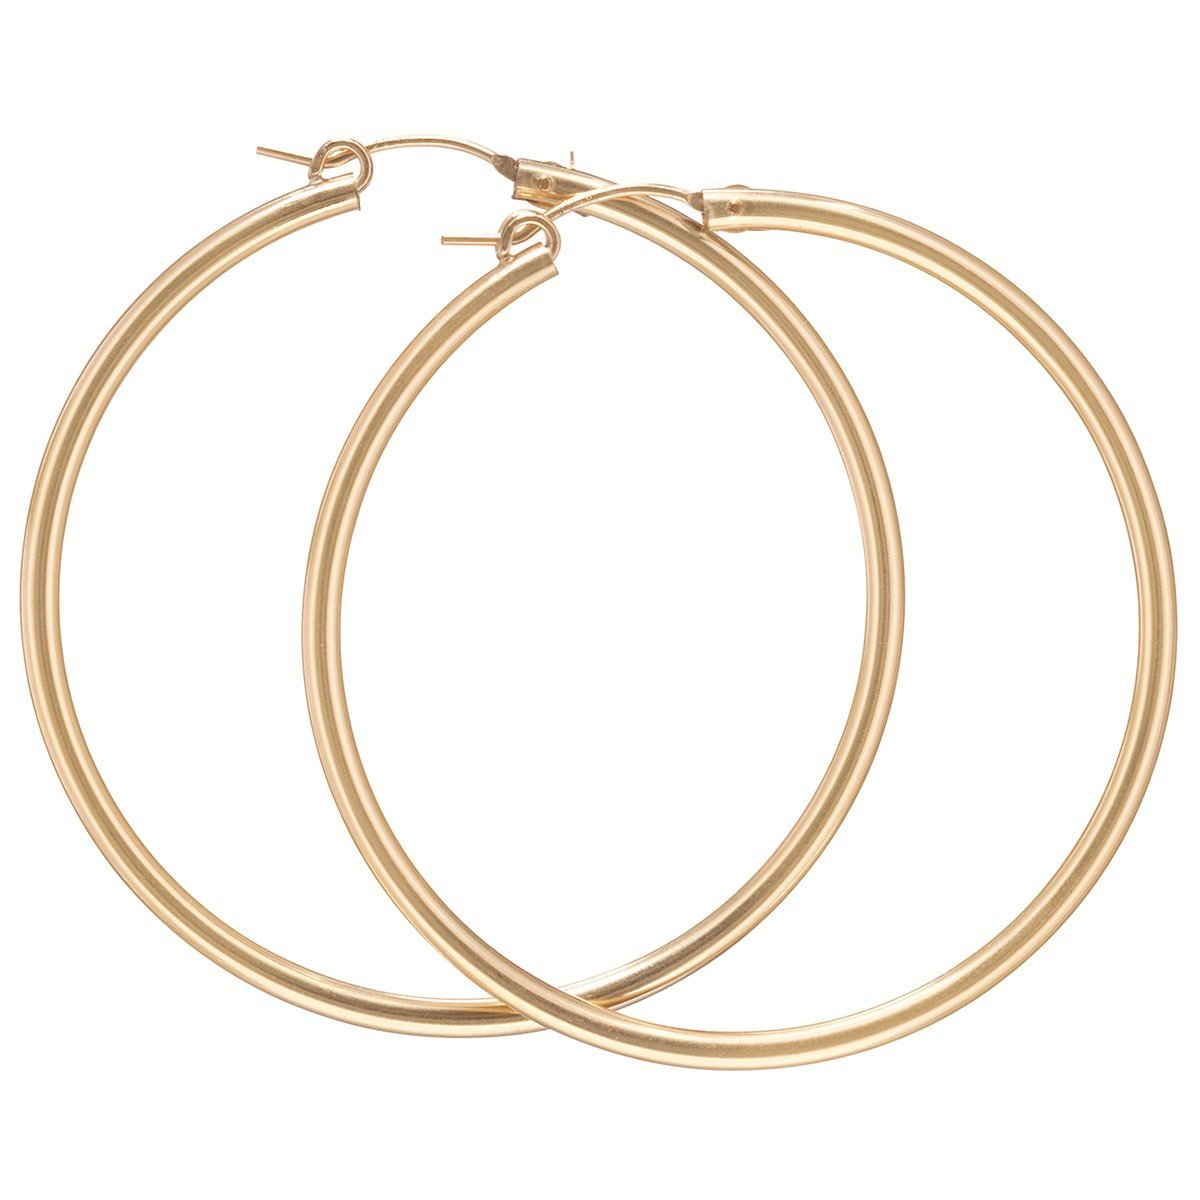 "ROUND GOLD 2"" HOOP- SMOOTH - Molly's! A Chic and Unique Boutique"